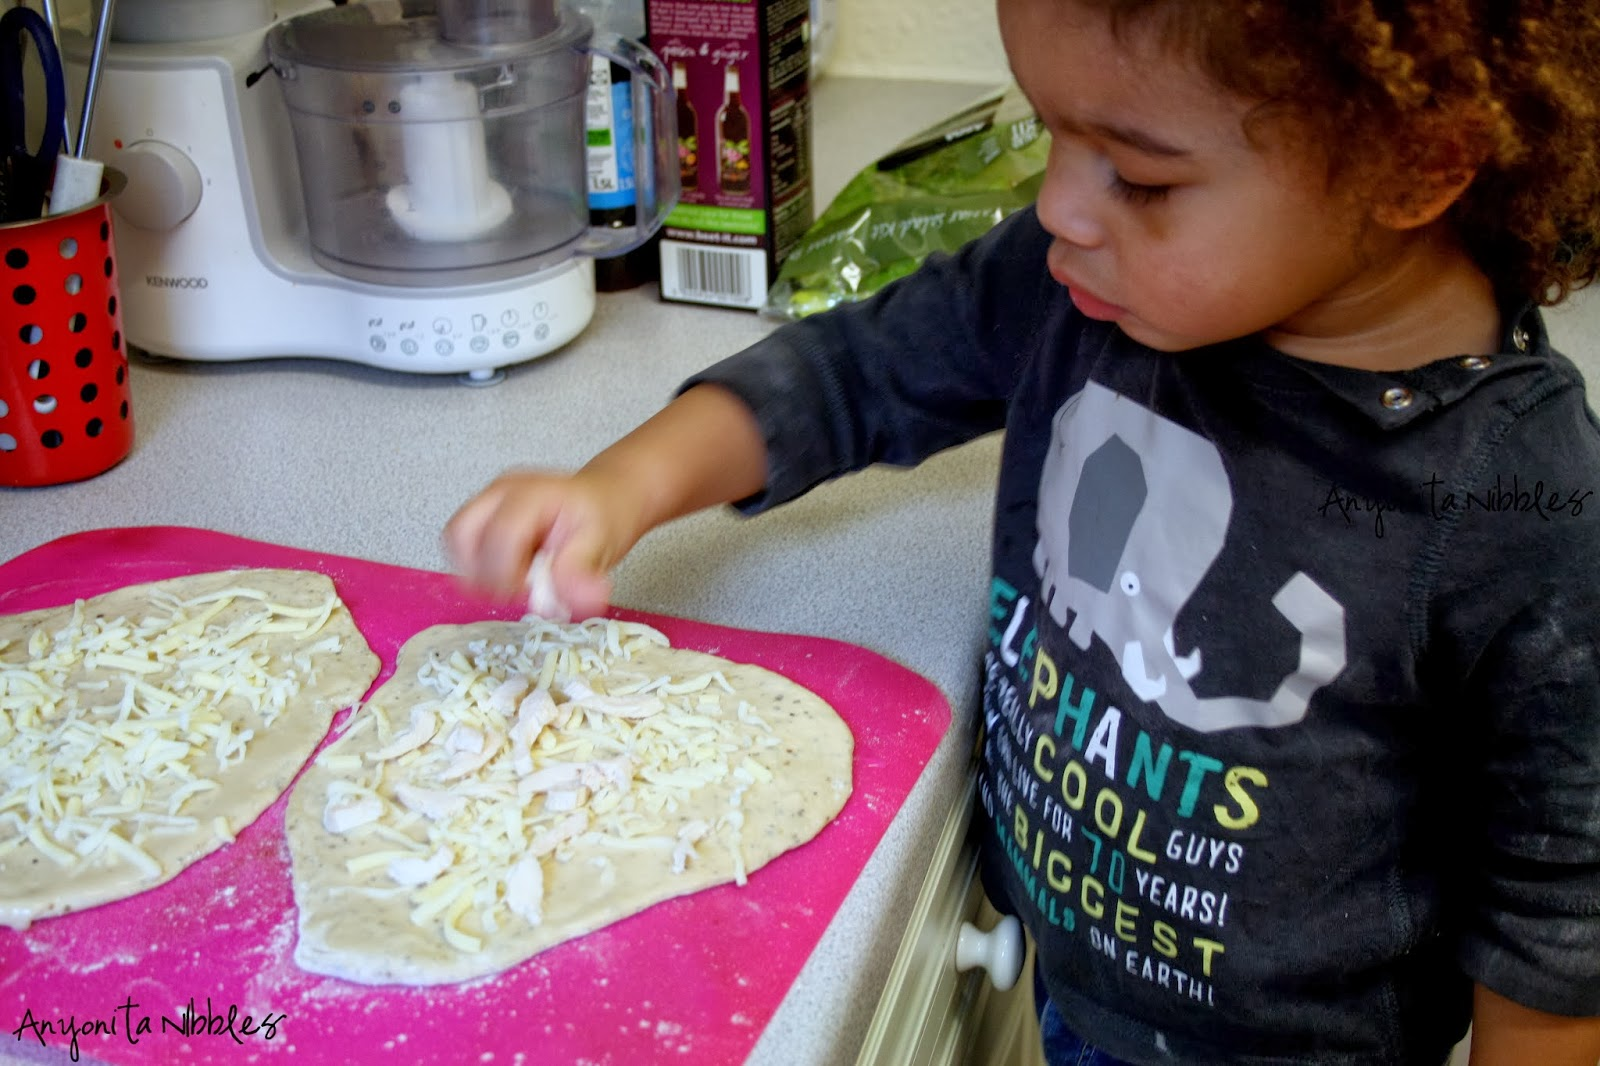 Toddlers who cook: Callum sprinkles cheese onto pizzas | Anyonita Nibbles